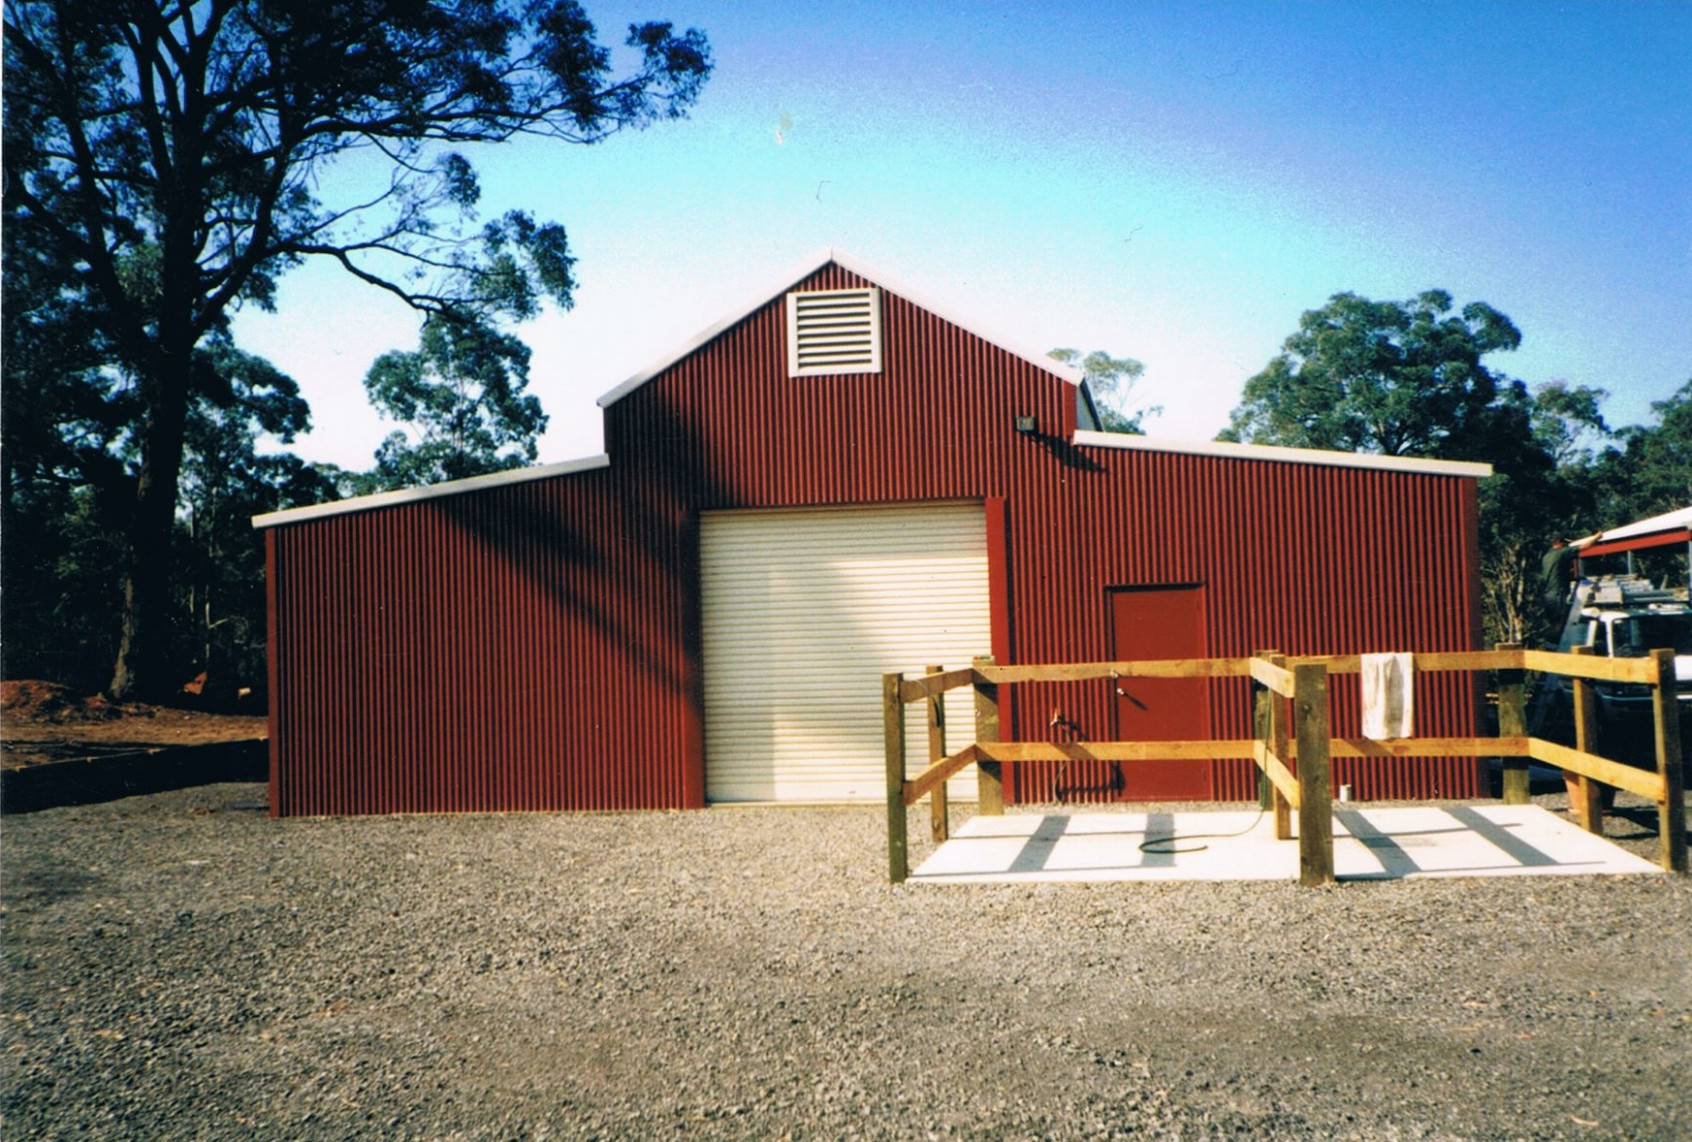 Hills Sheds & Garages P/L Sheds That Last Garage And Carports Sydney